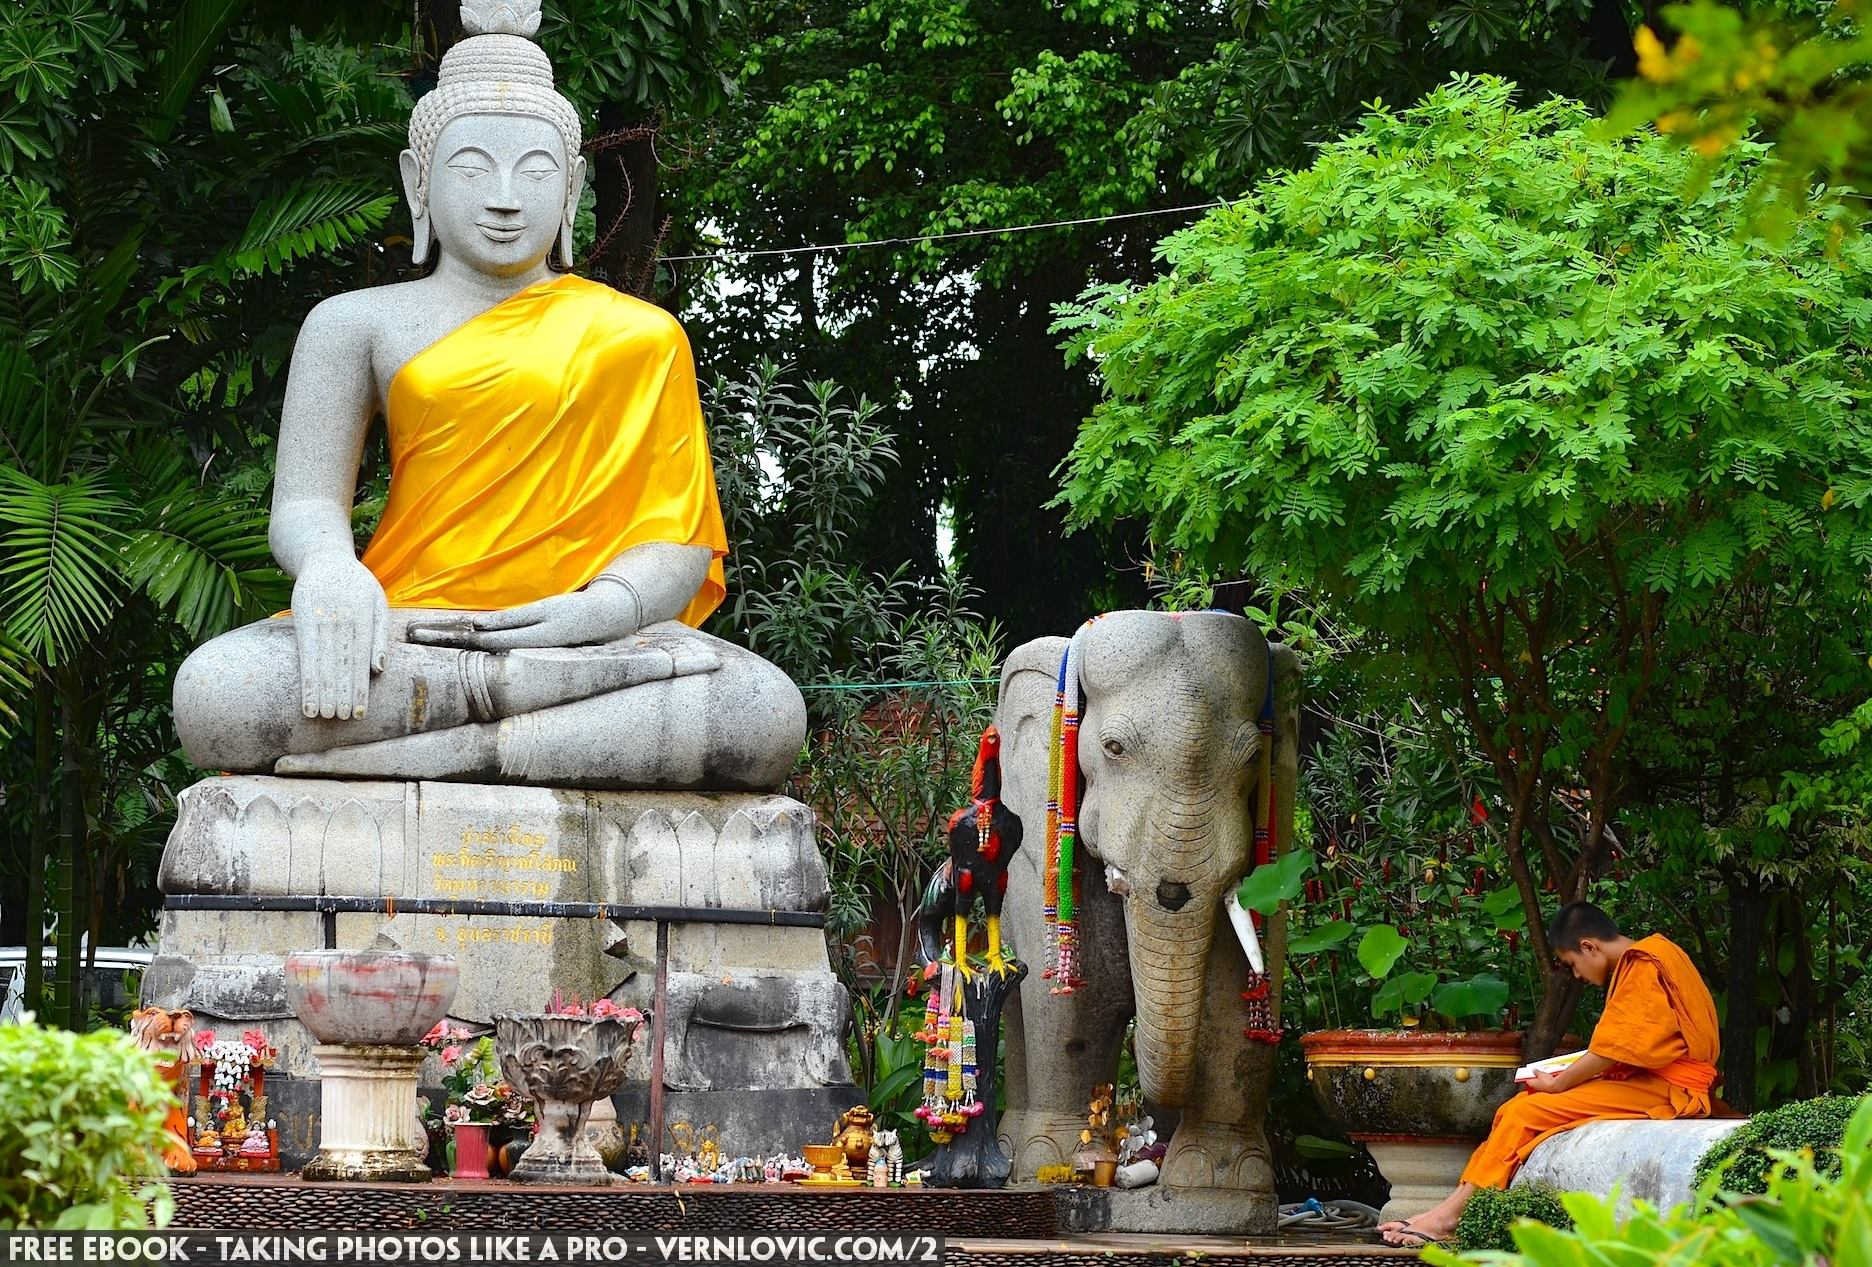 A white elephant by Buddha meditating in a Buddhist temple in Thailand.